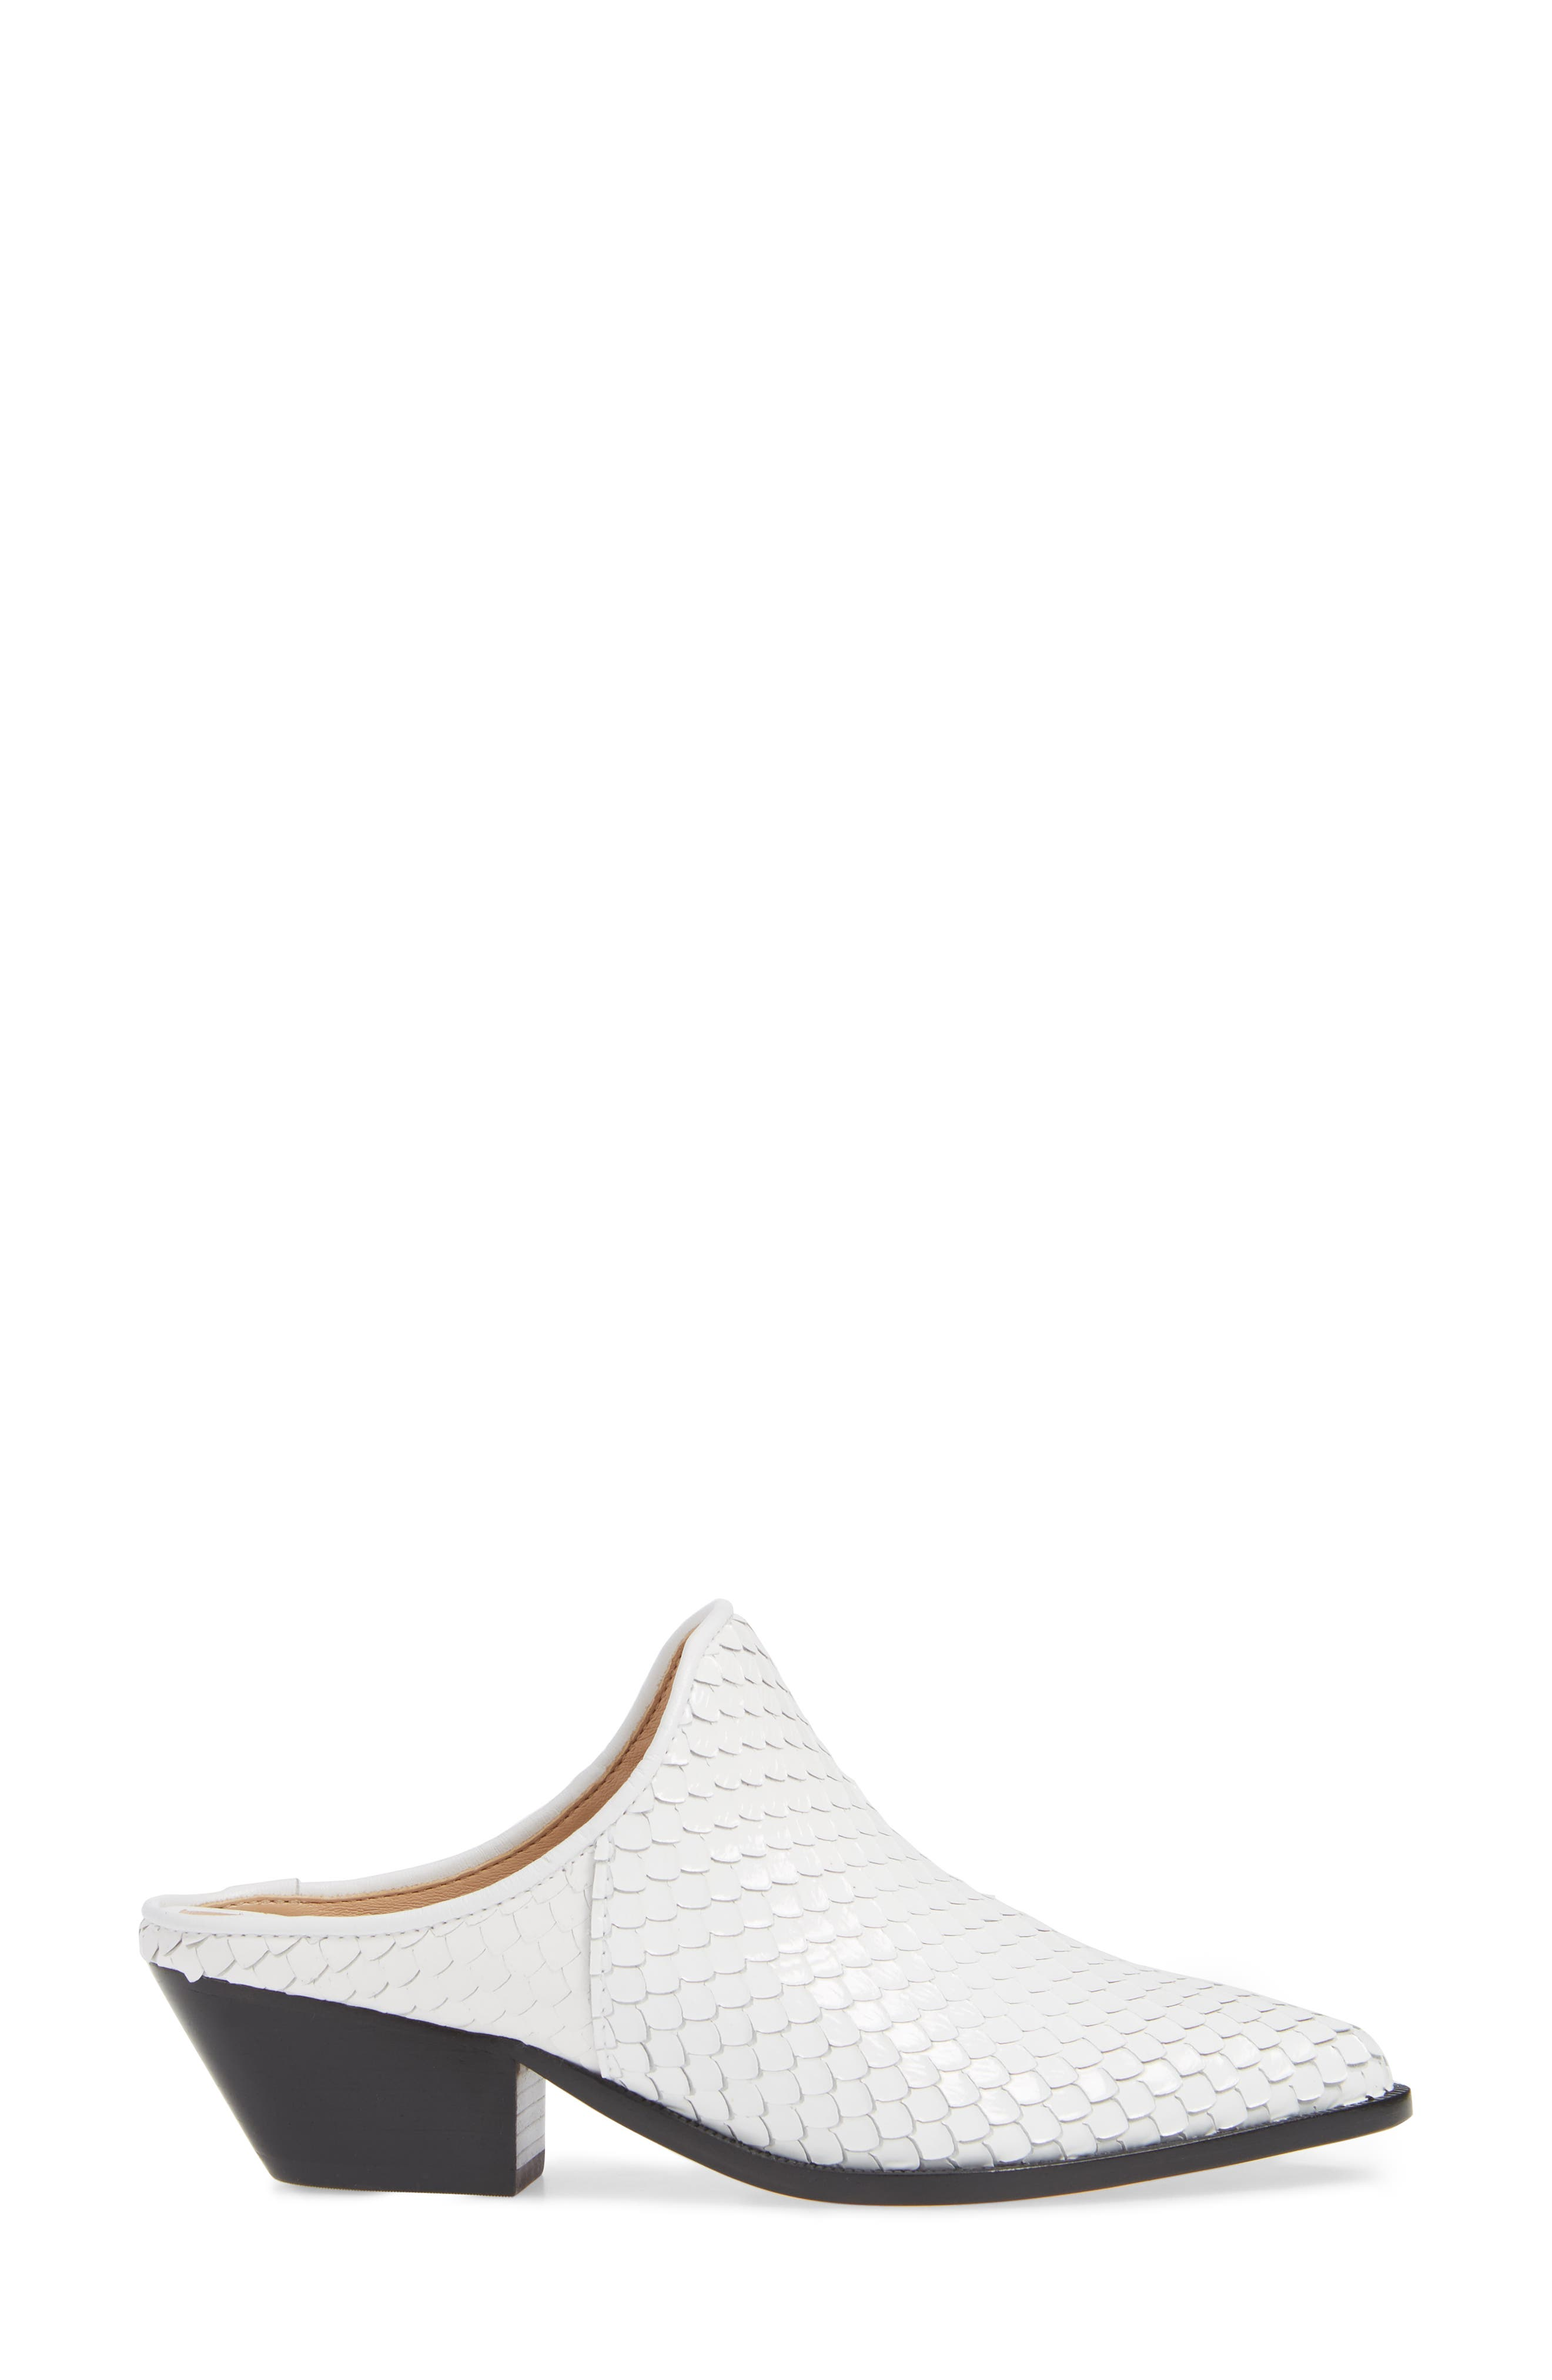 Leanny Mule,                             Alternate thumbnail 3, color,                             WHITE LEATHER